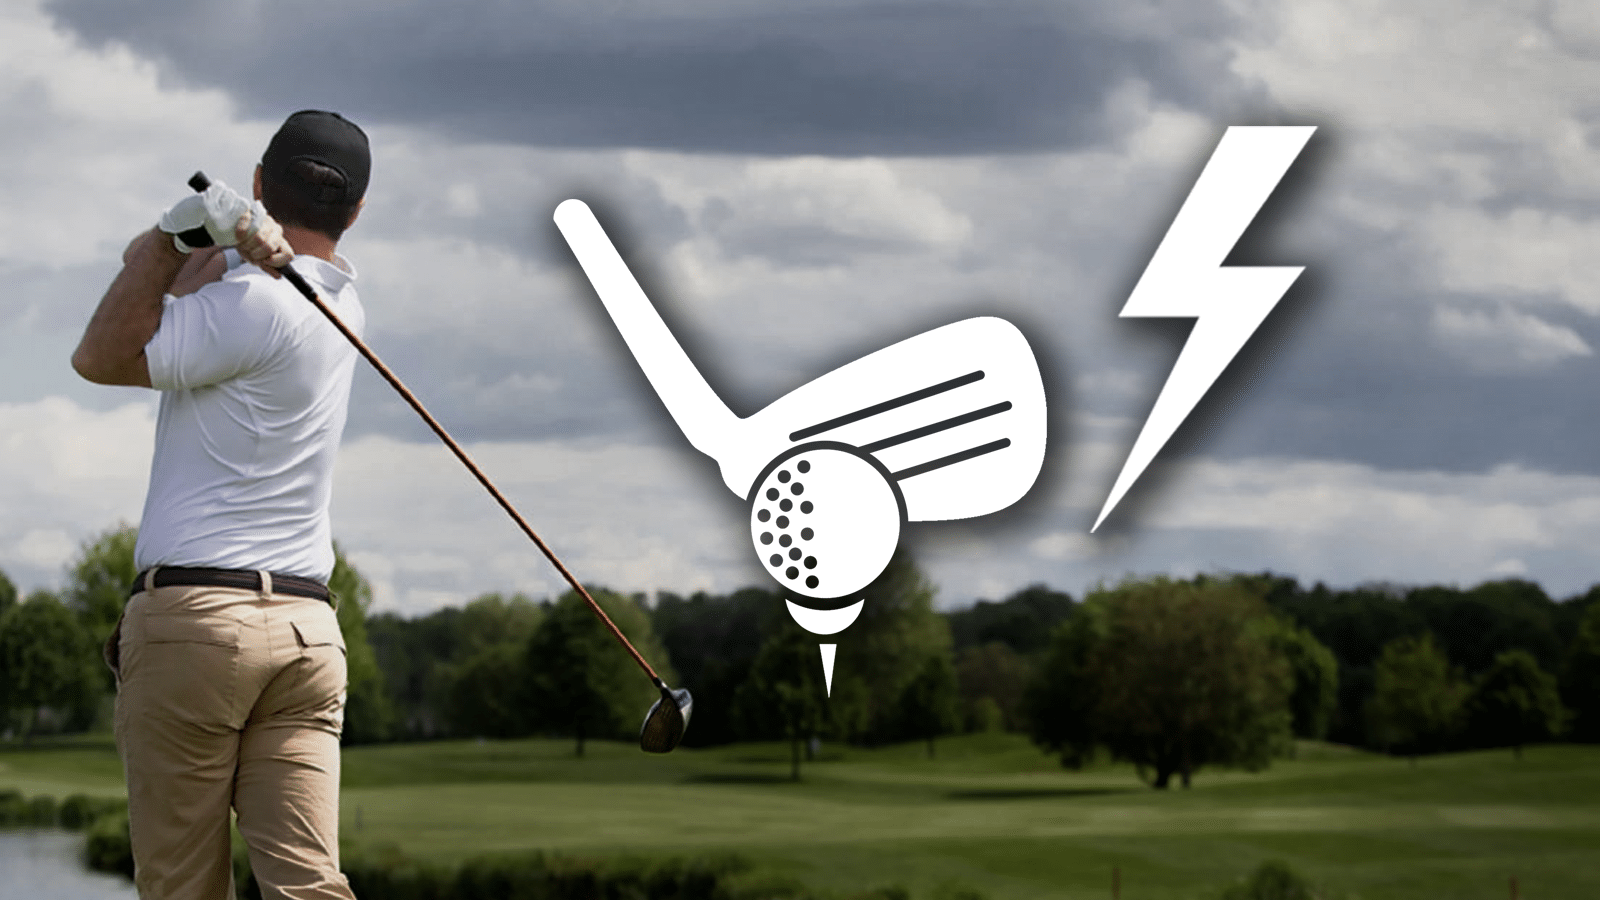 IN-TELLIGENT = SMARTER LIGHTNING SAFETY: COMING SOON TO A GOLF COURSE NEAR YOU